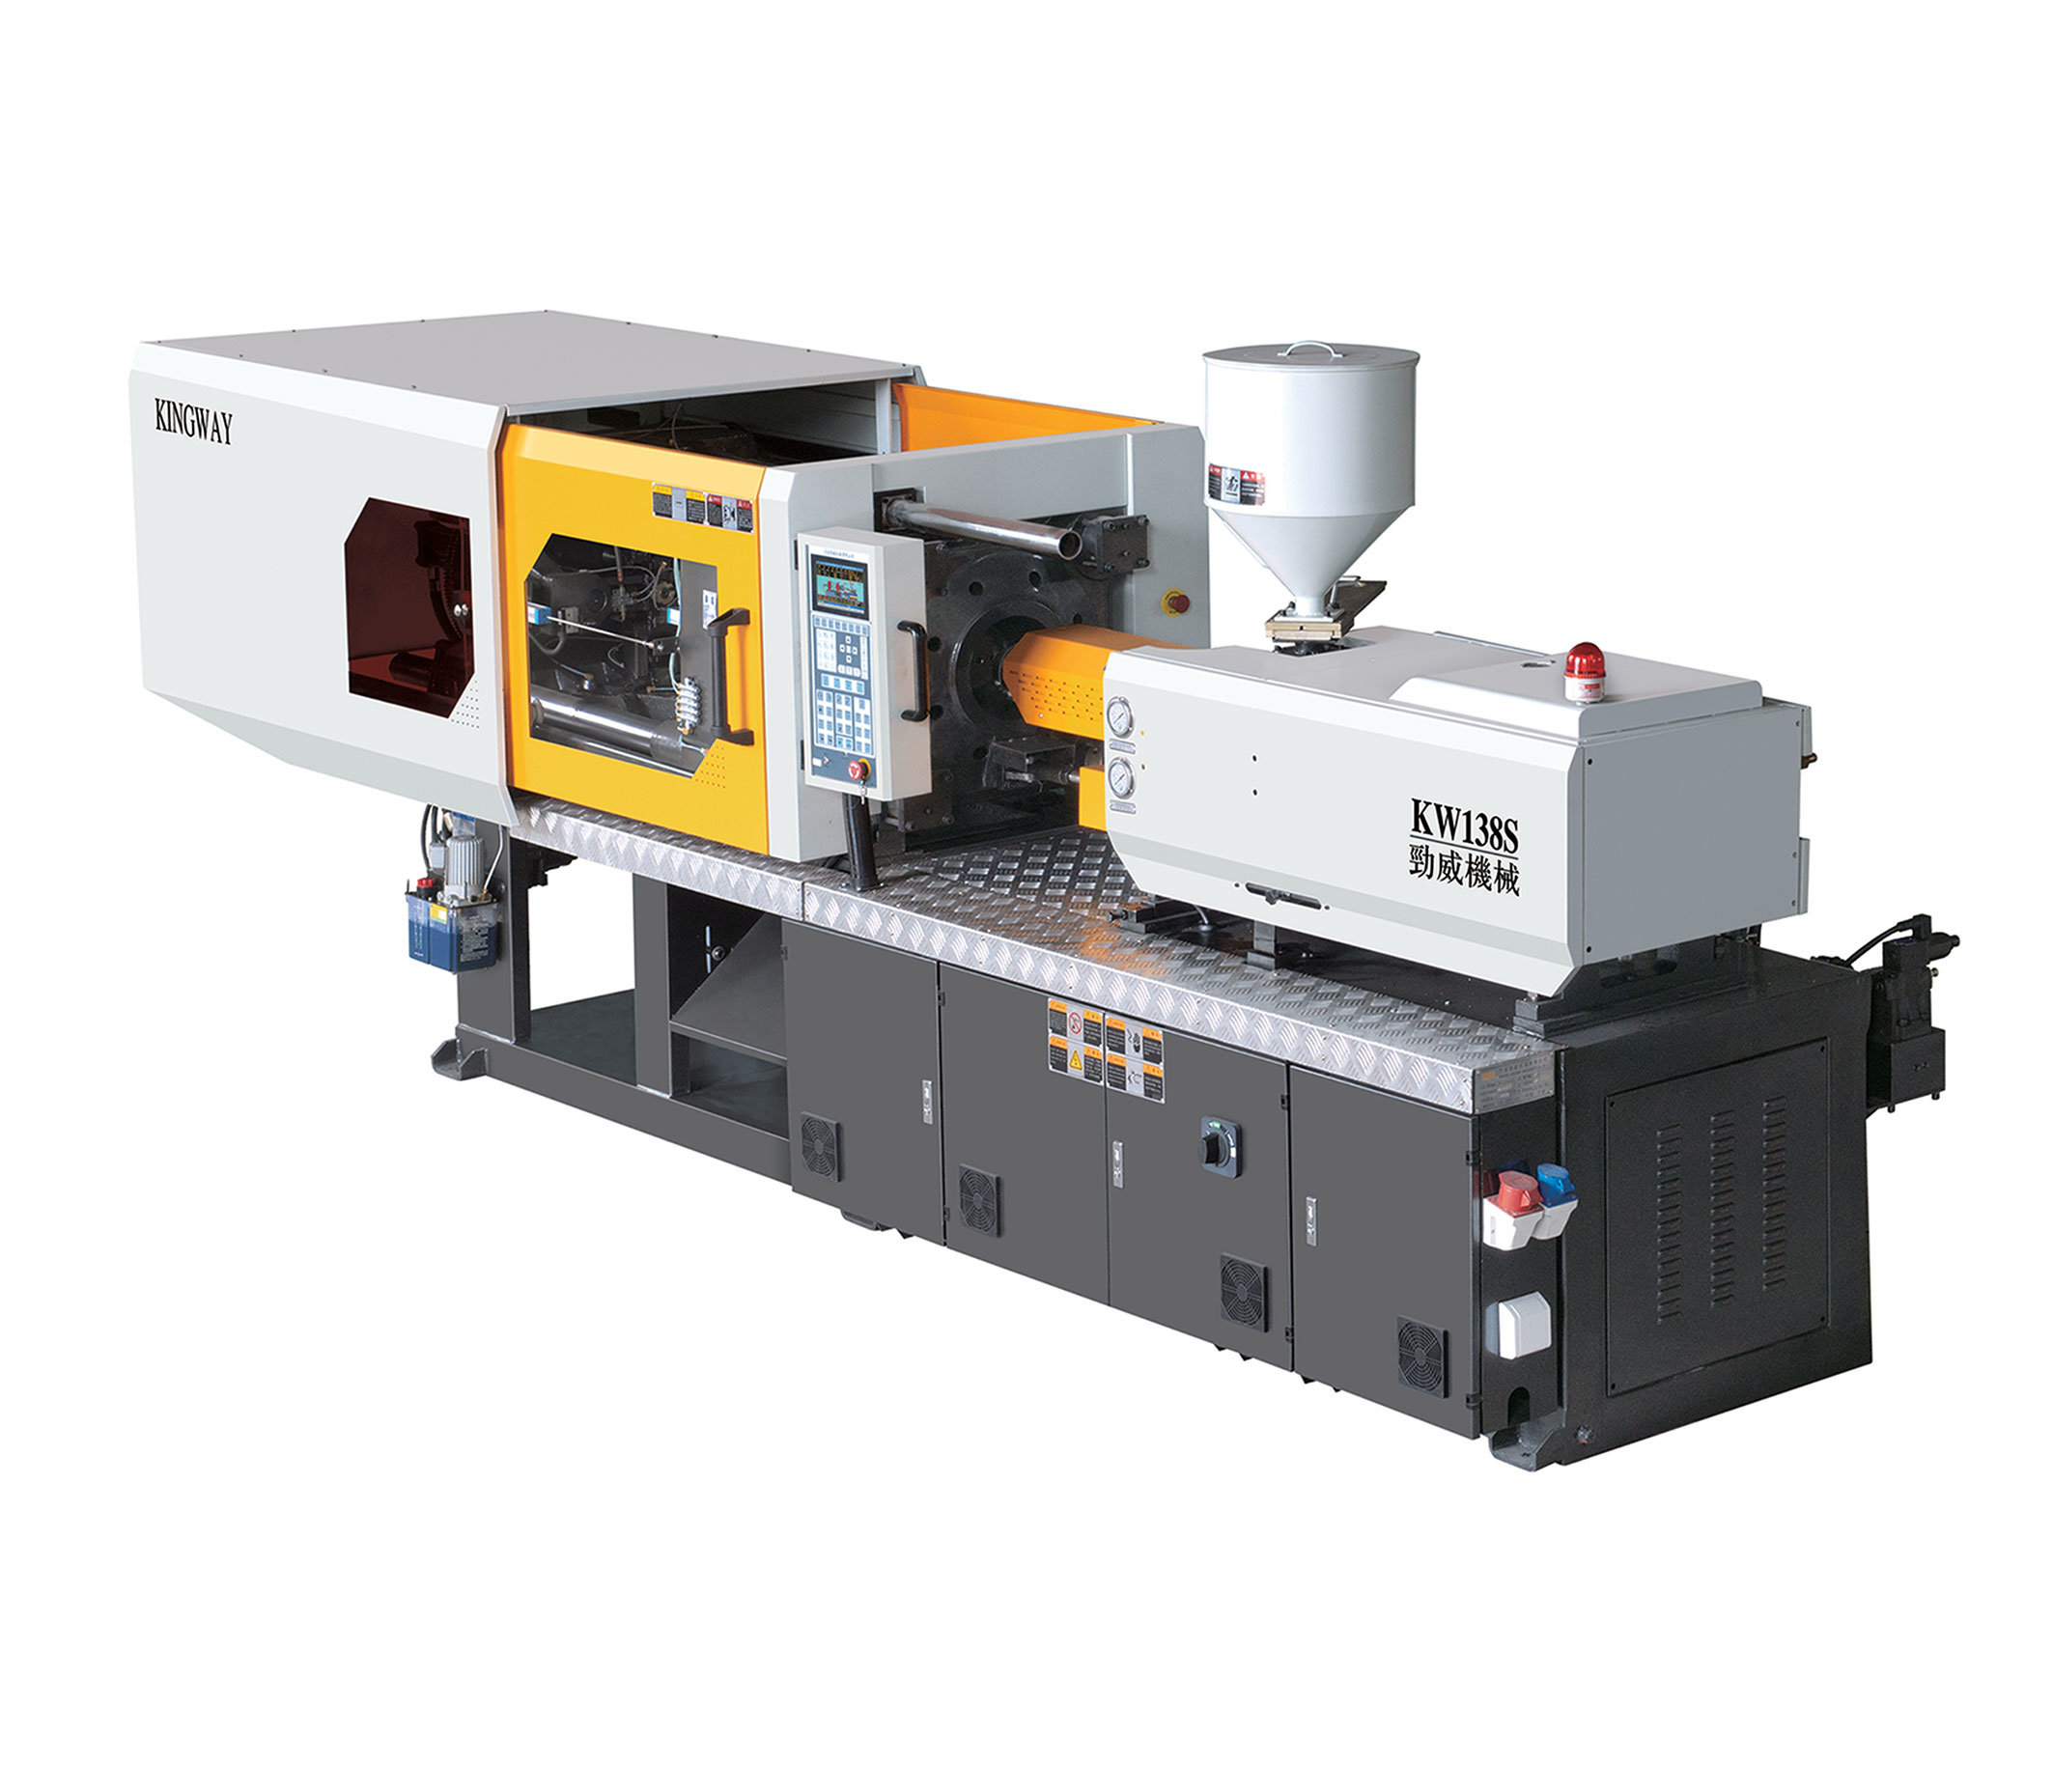 168t High Performance Plastic Injection Molding Machine